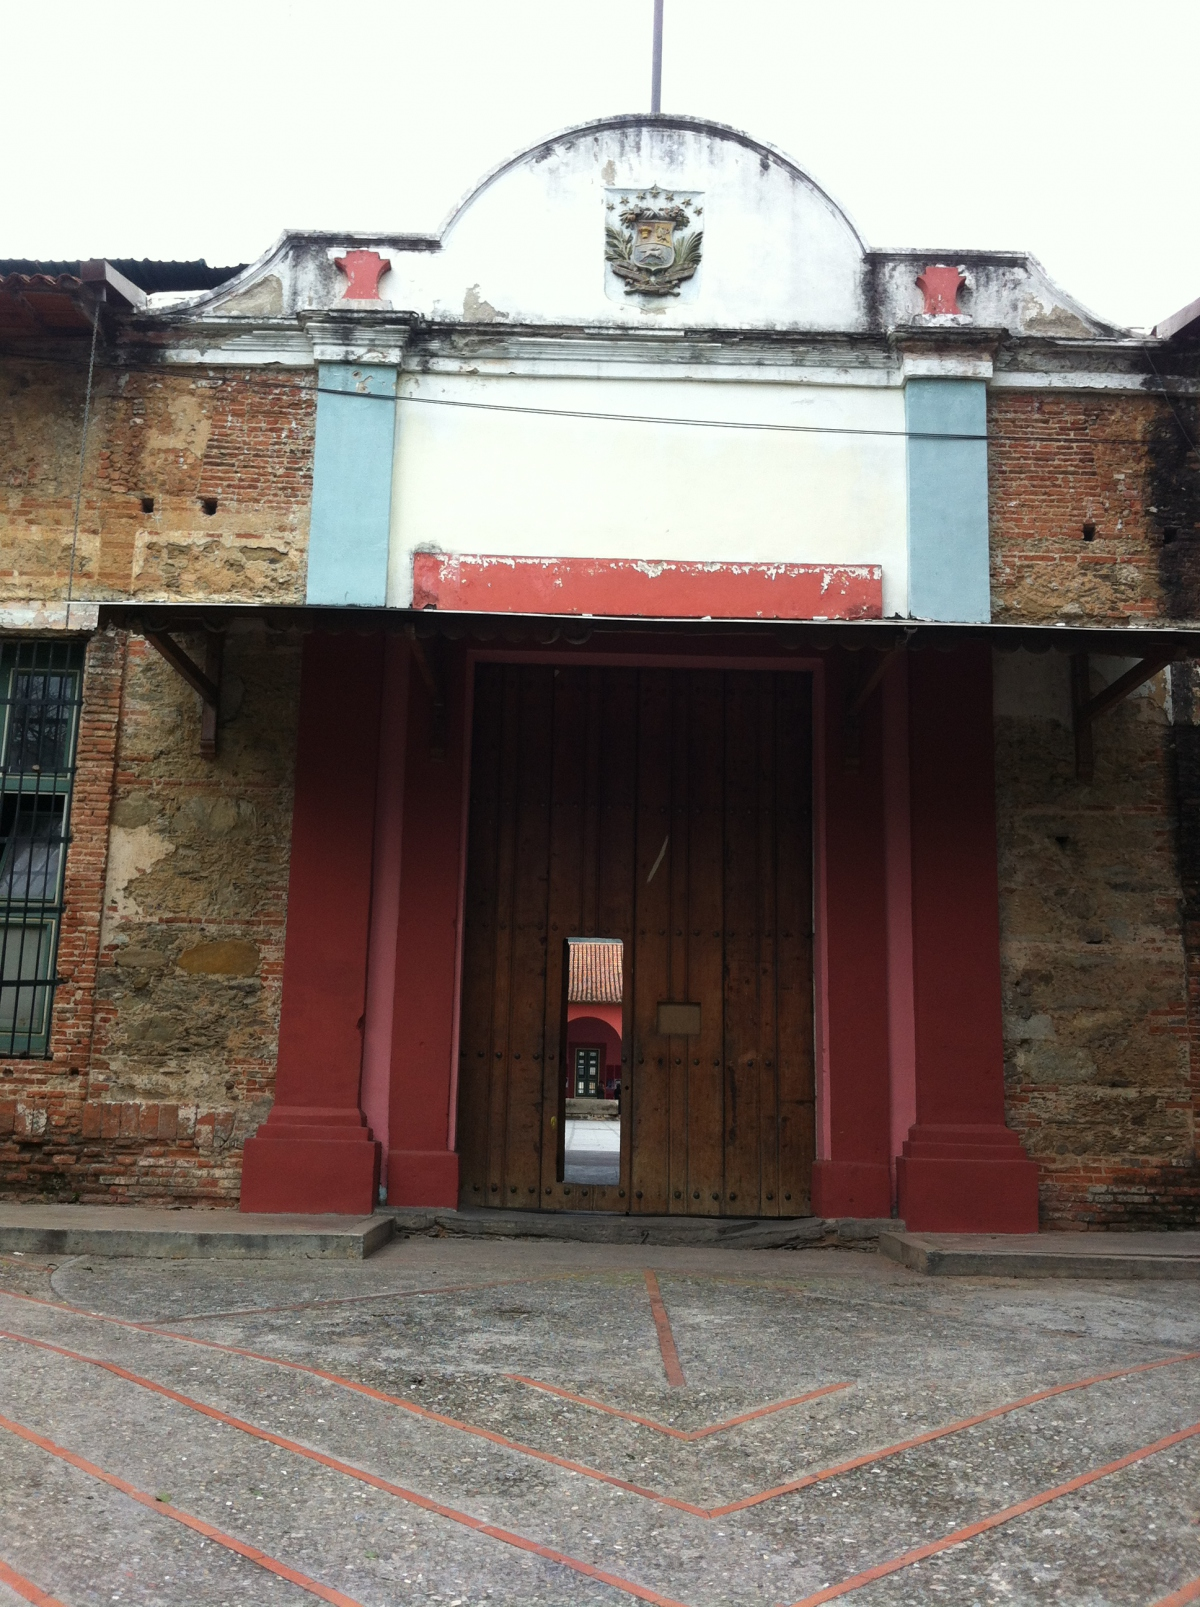 The entrance to San Carlos, with some of its features dating back to its construction in 1771.